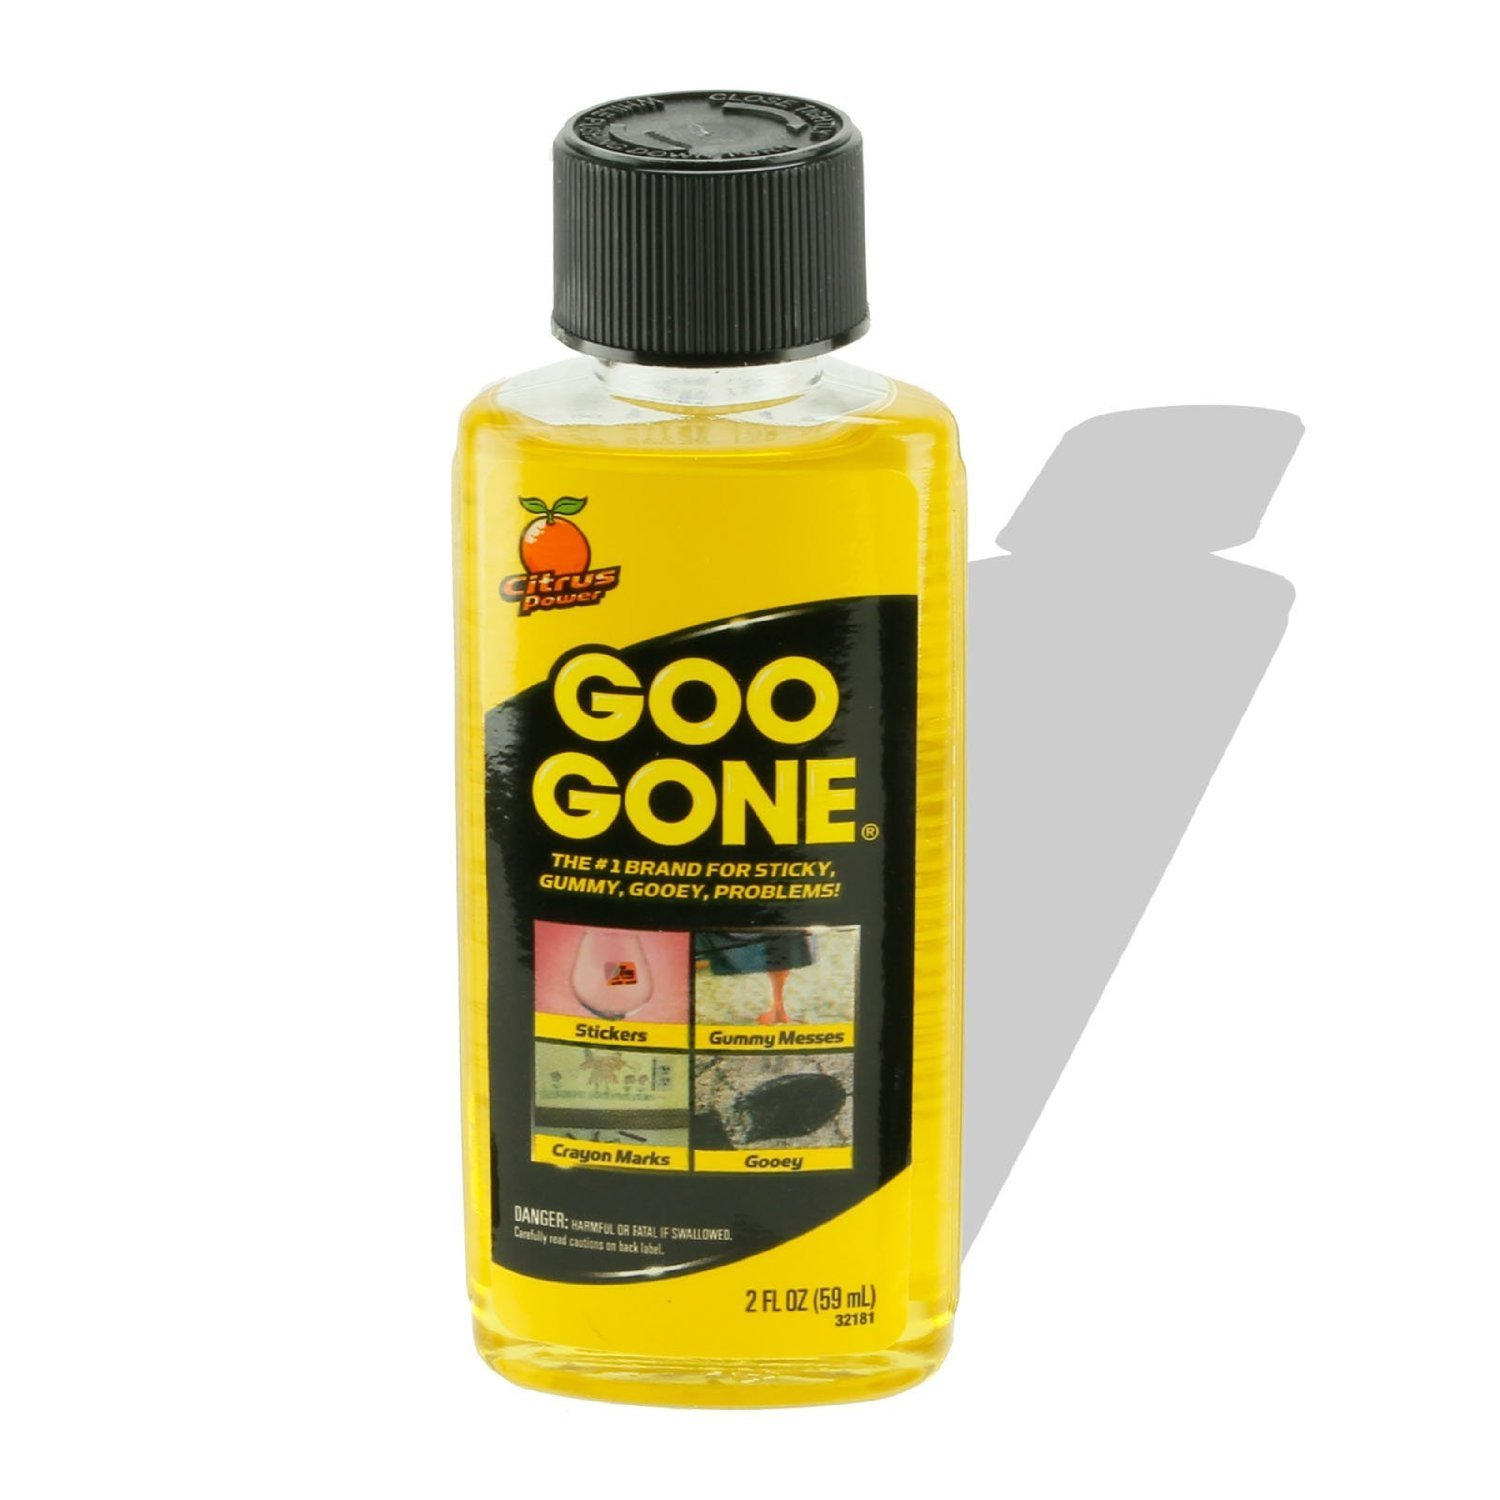 Goo Gone - 2oz Bottle - Citrus Scented - Cuts Grease, Oil, Gum, Adhesive Residue(pack of 3)